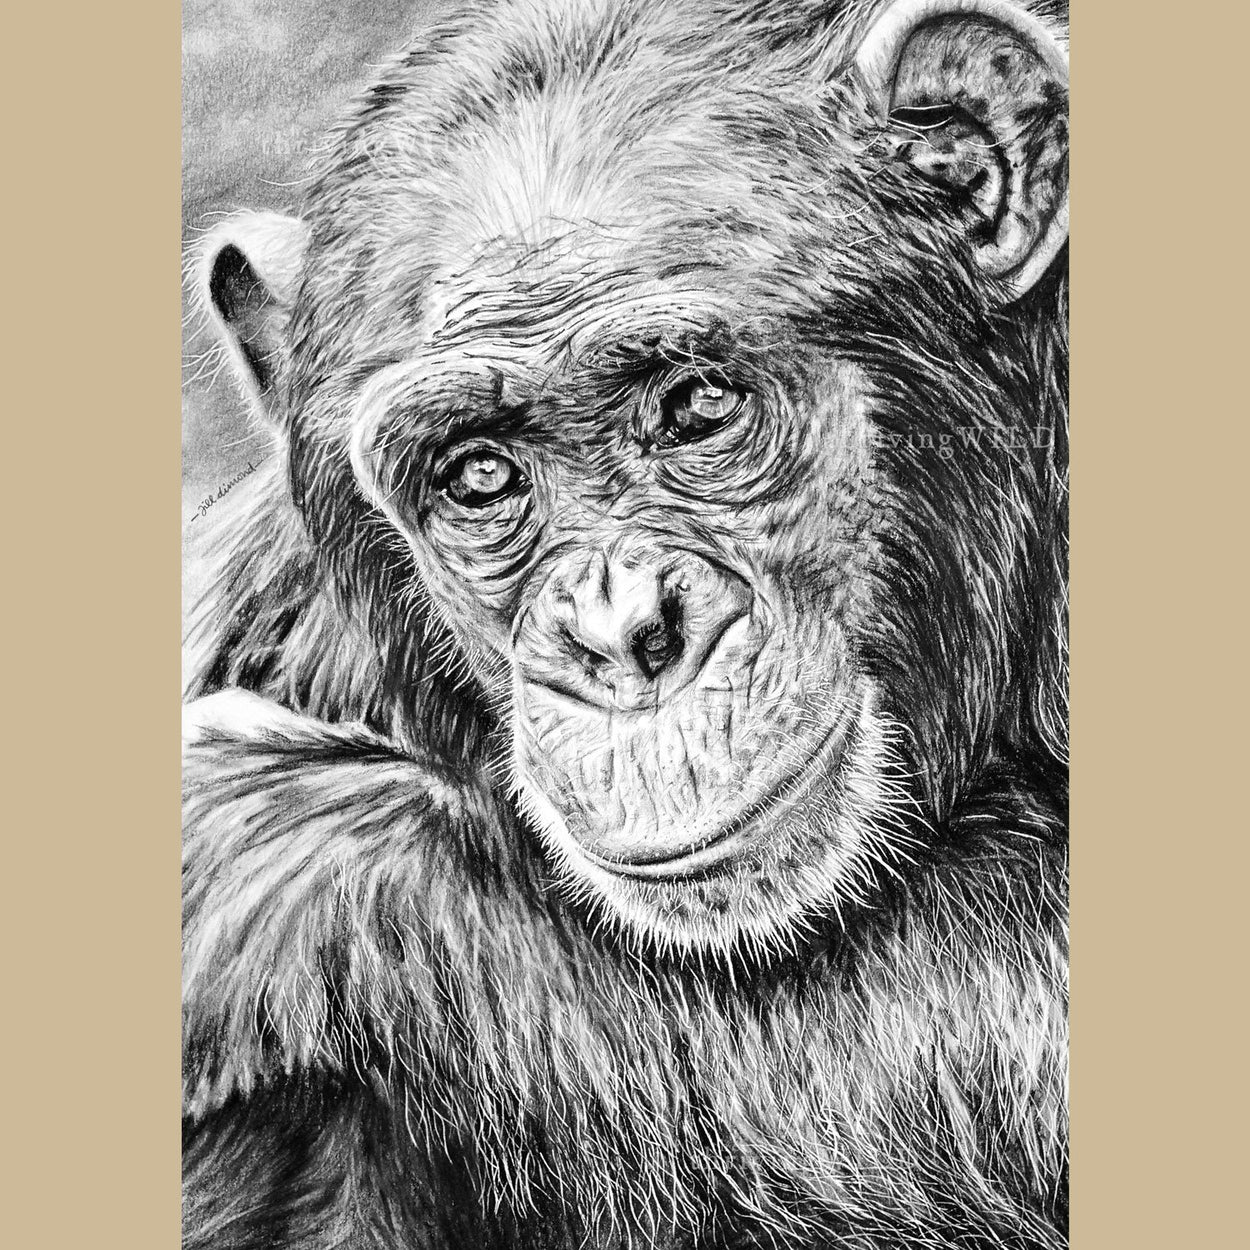 Chimp Wildlife Pencil Drawing - The Thriving Wild